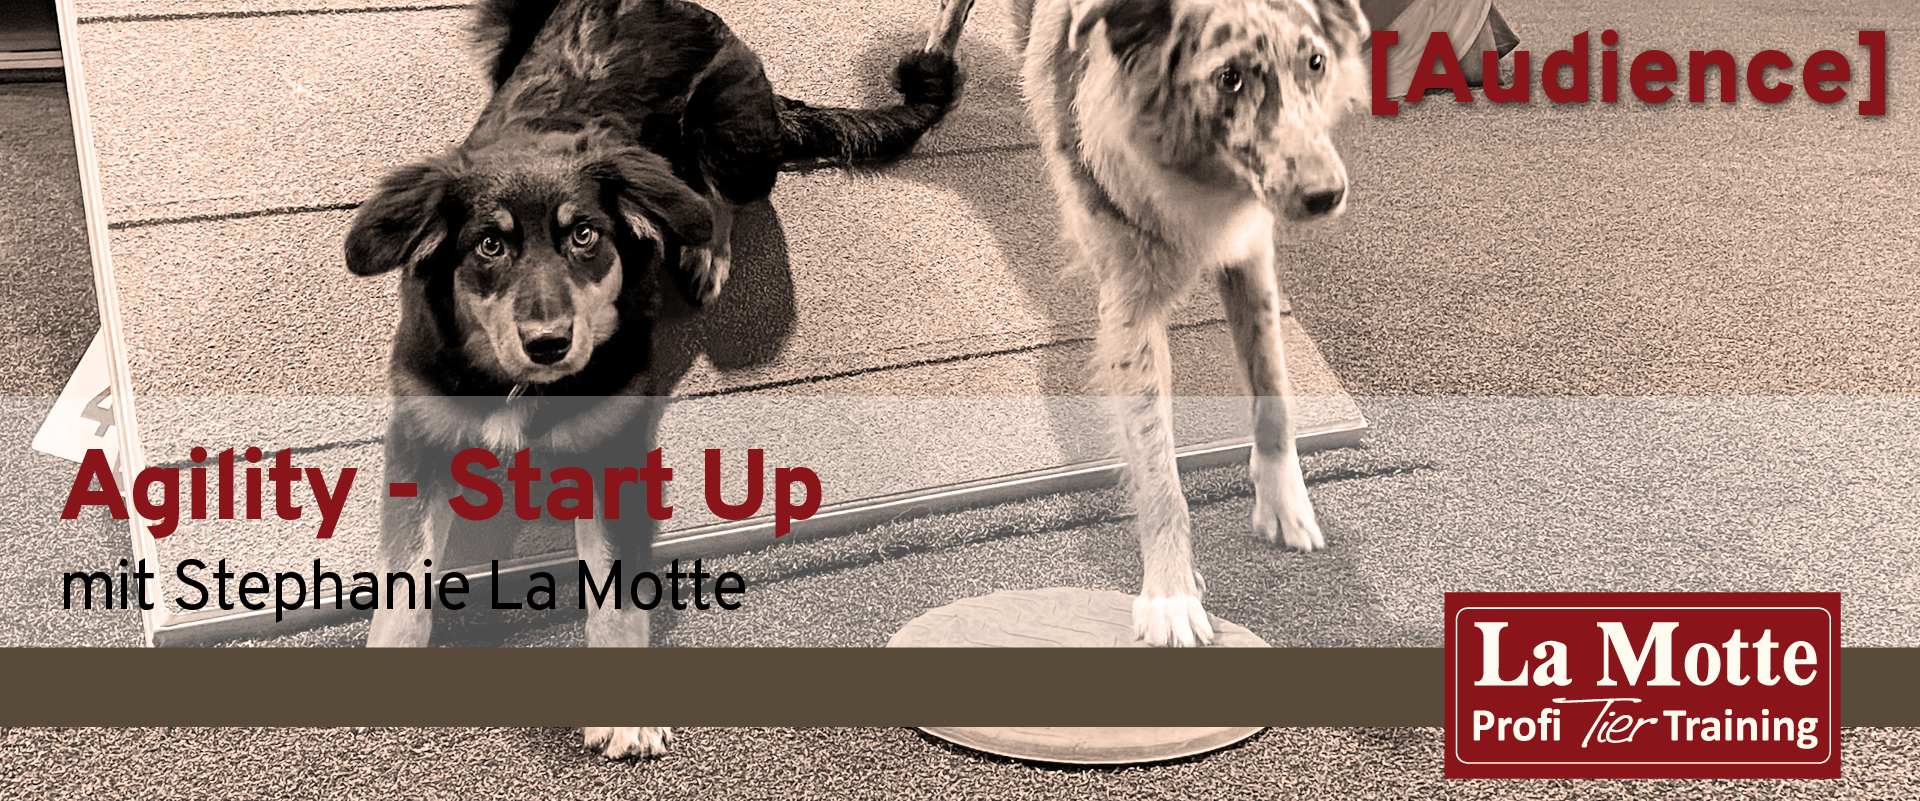 Agility - Start Up 02.21 mit Stephanie La Motte (Audience)